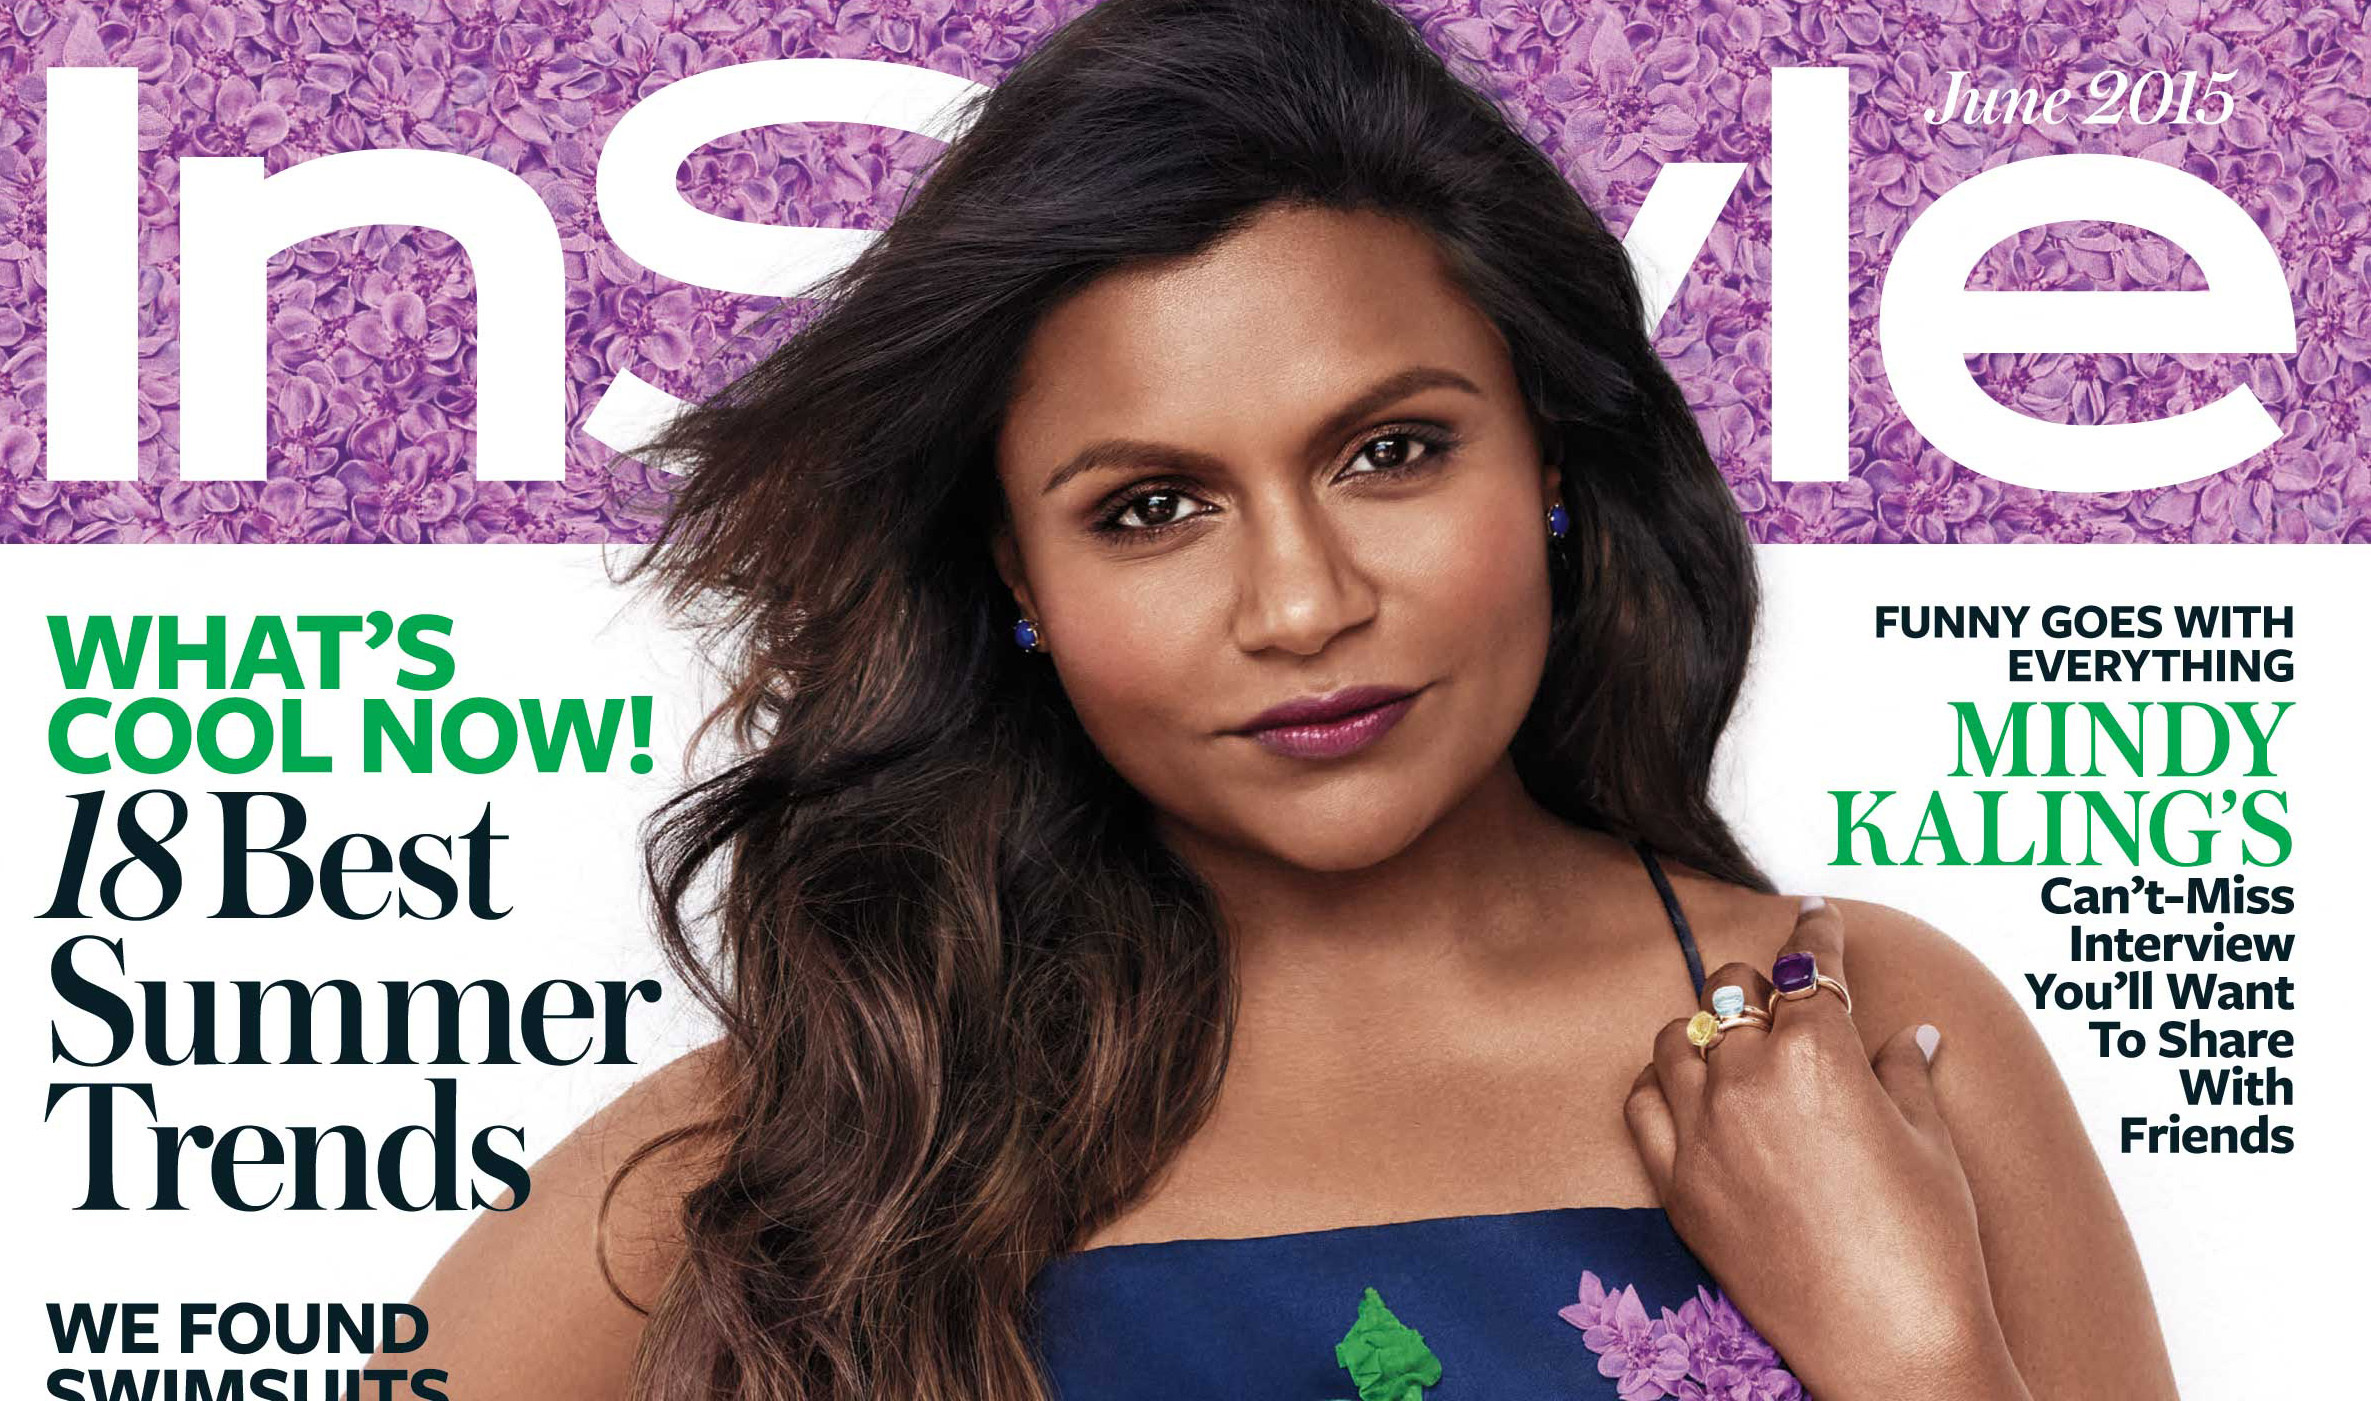 Mindy Kaling Wallpapers Images Photos Pictures Backgrounds 2371x1401